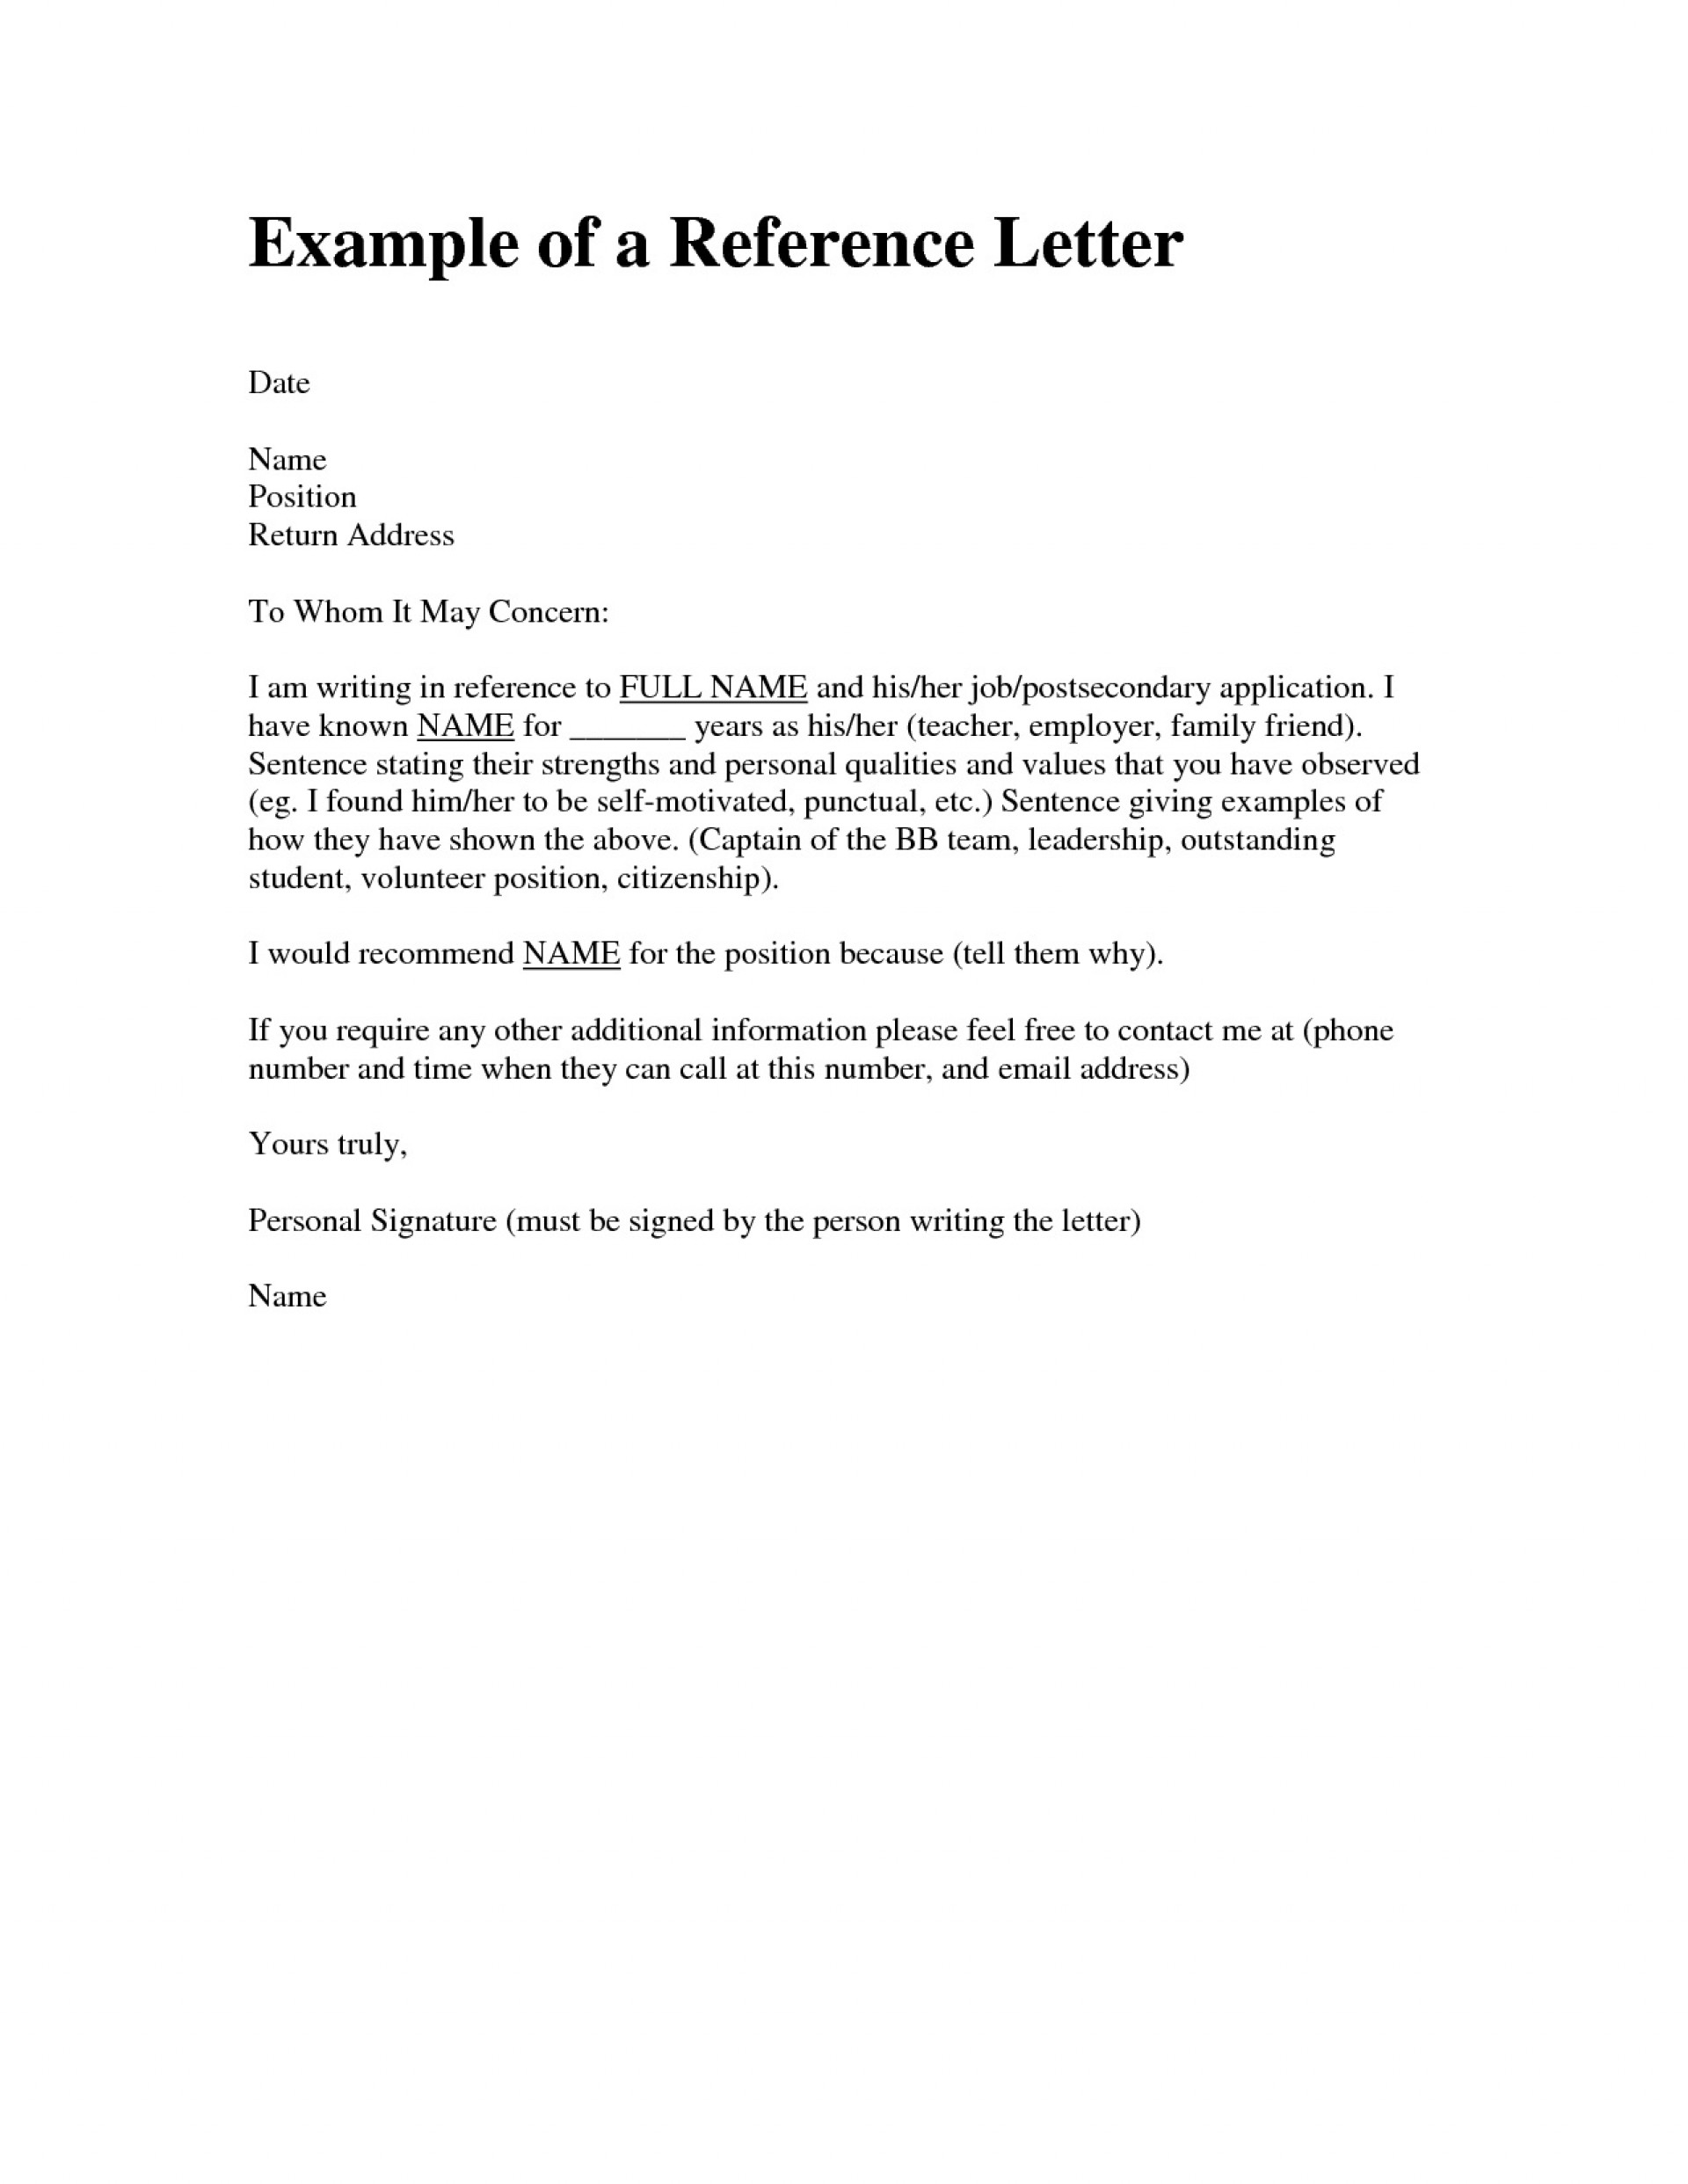 Immigration Reference Letter For Friend from www.addictionary.org